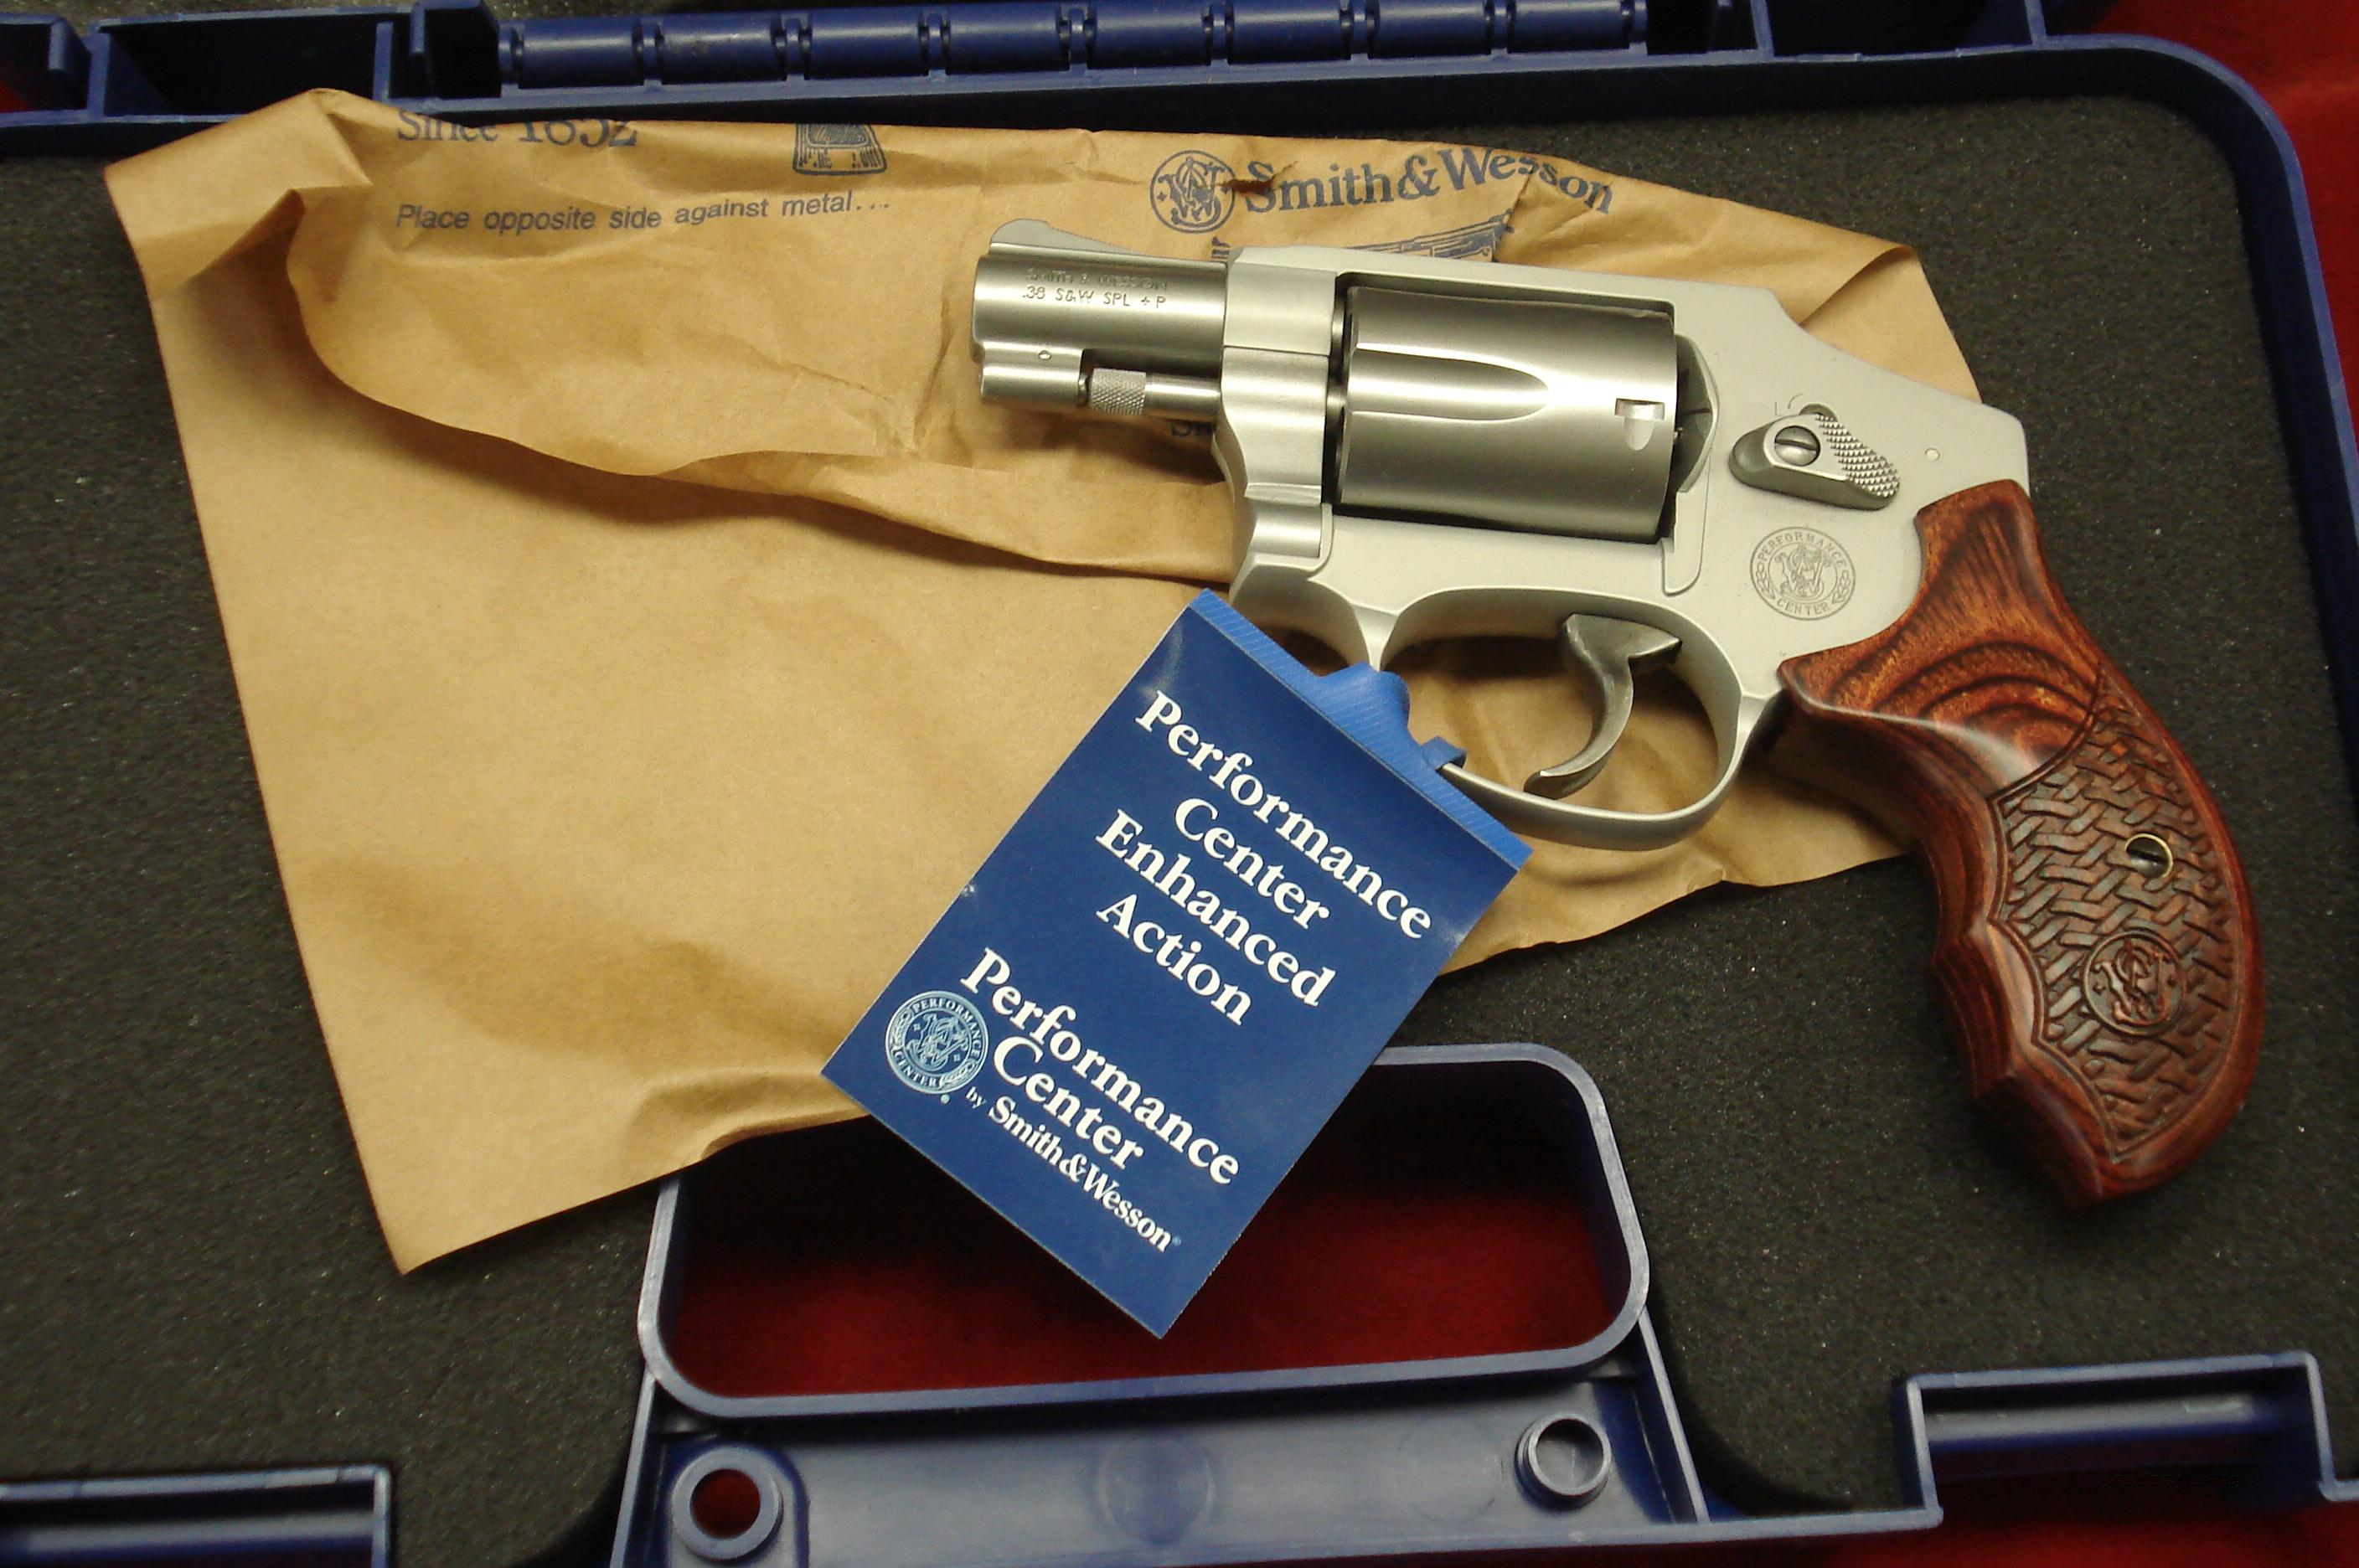 SMITH AND WESSON PERFORMANCE CENTER MODEL 642 AIRWEIGHT 38SPL NEW  Guns > Pistols > Smith & Wesson Revolvers > Pocket Pistols